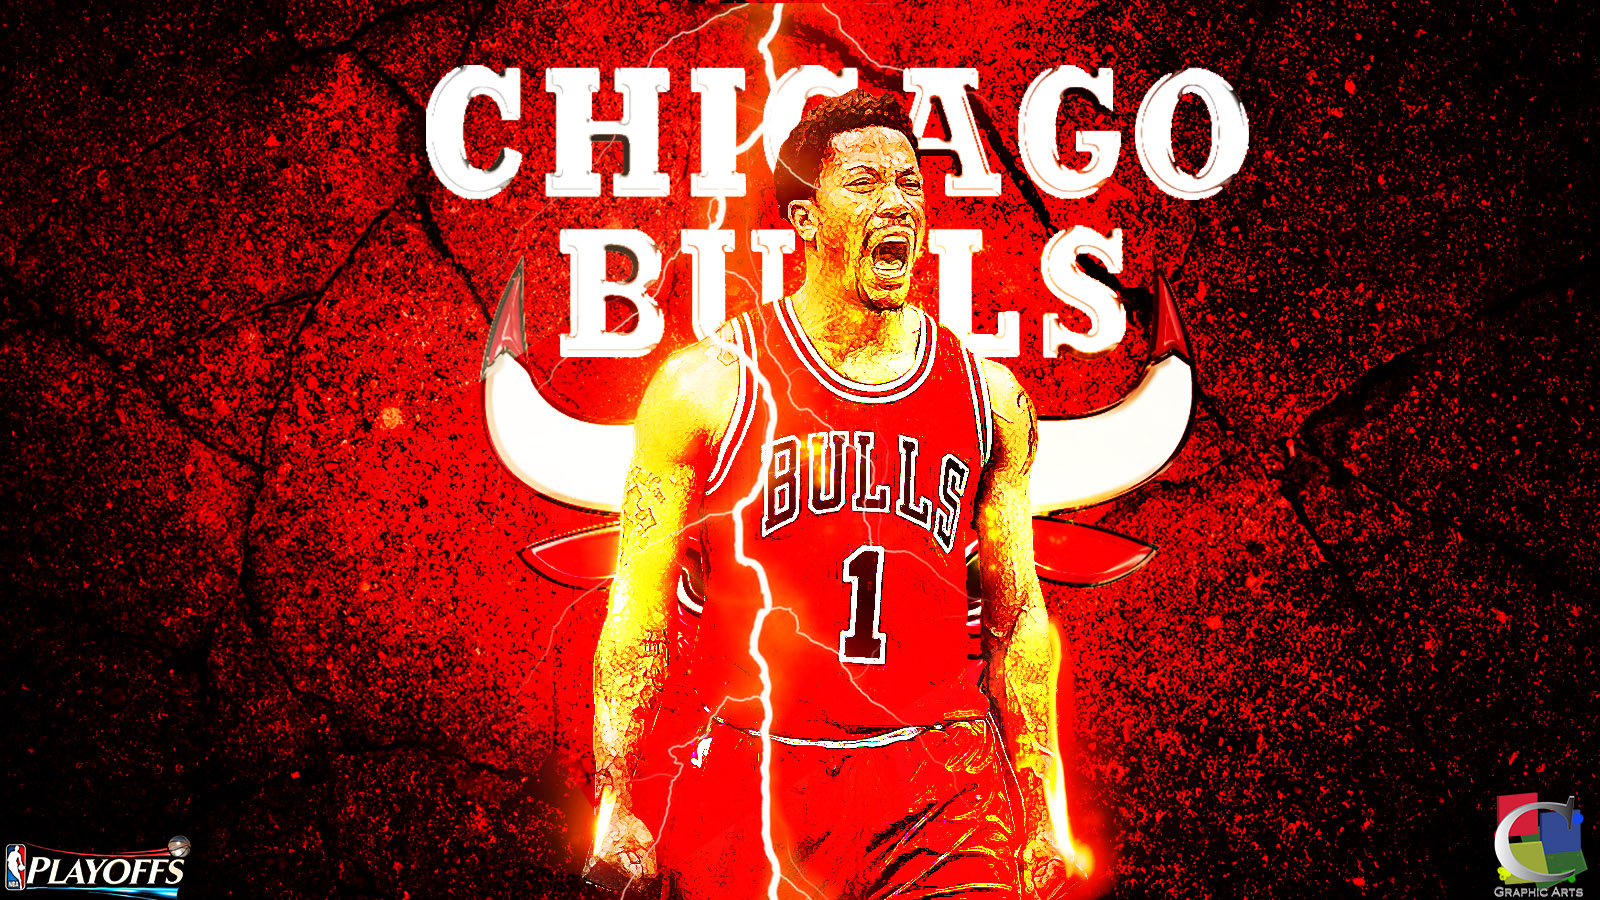 Derrick Rose Playoffs 2015 Wallpaper by CGraphicArts 1600x900